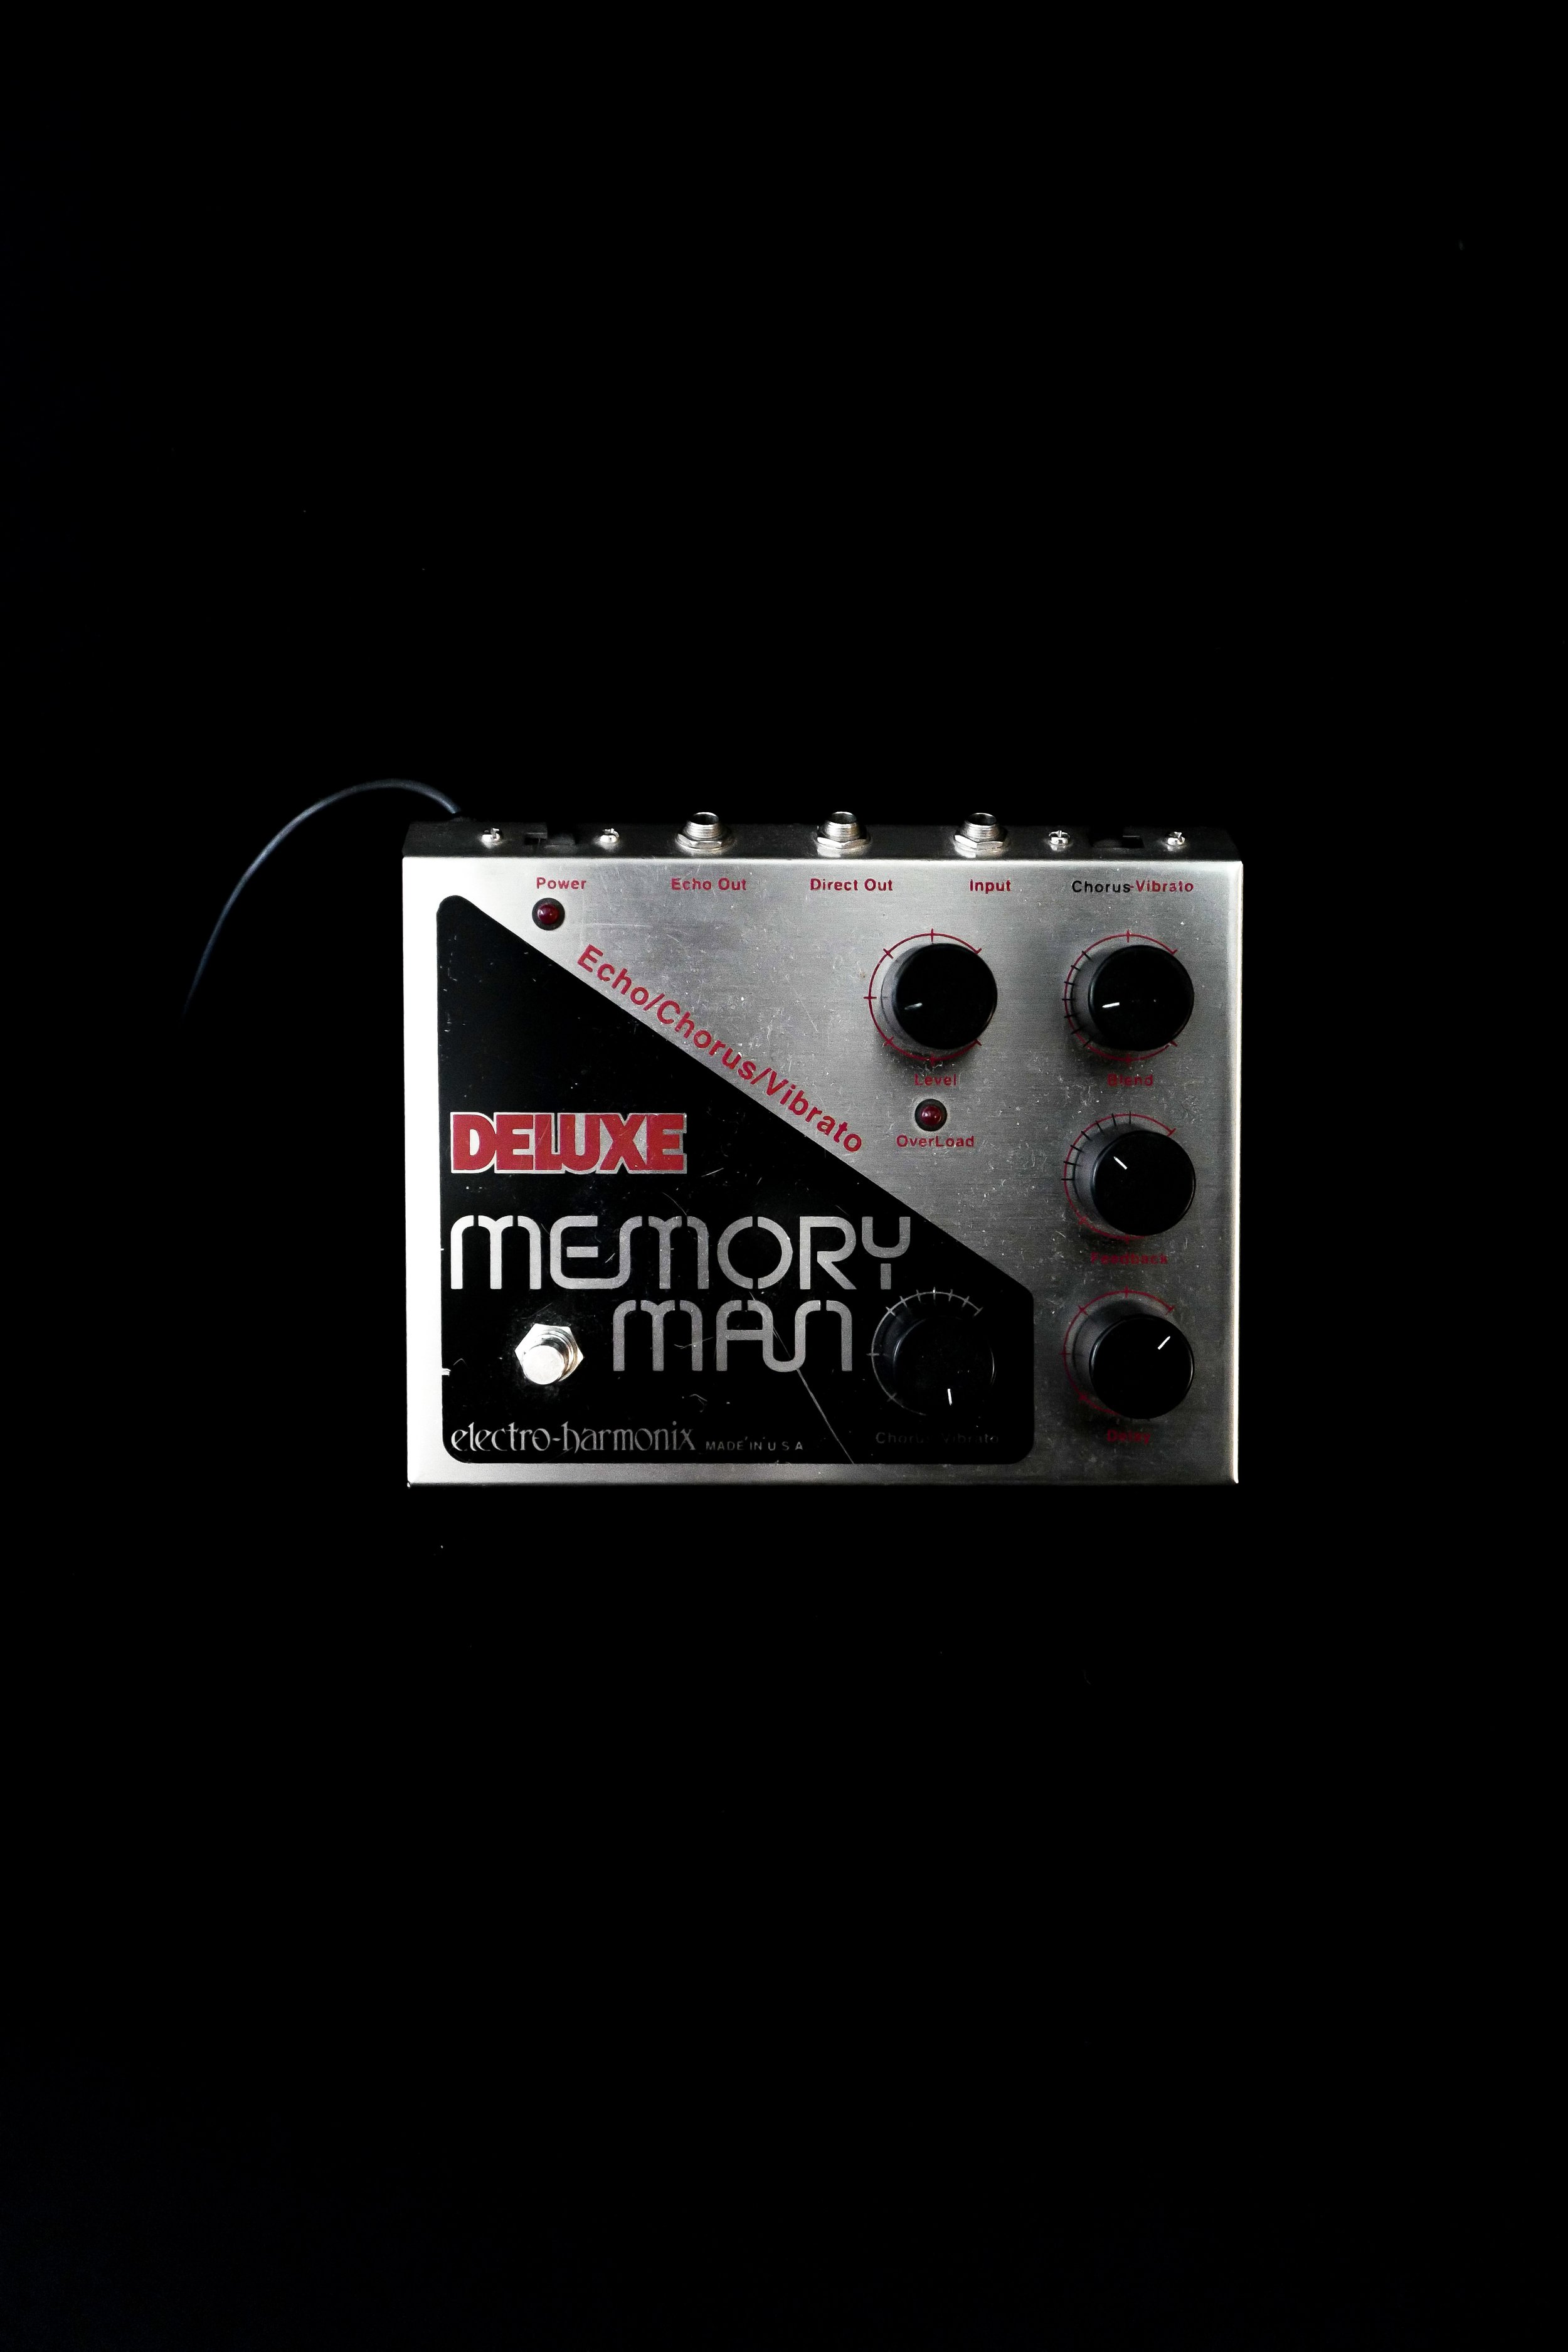 Electro-Harmonix Deluxe Memory Man - My favorite delay for anything.